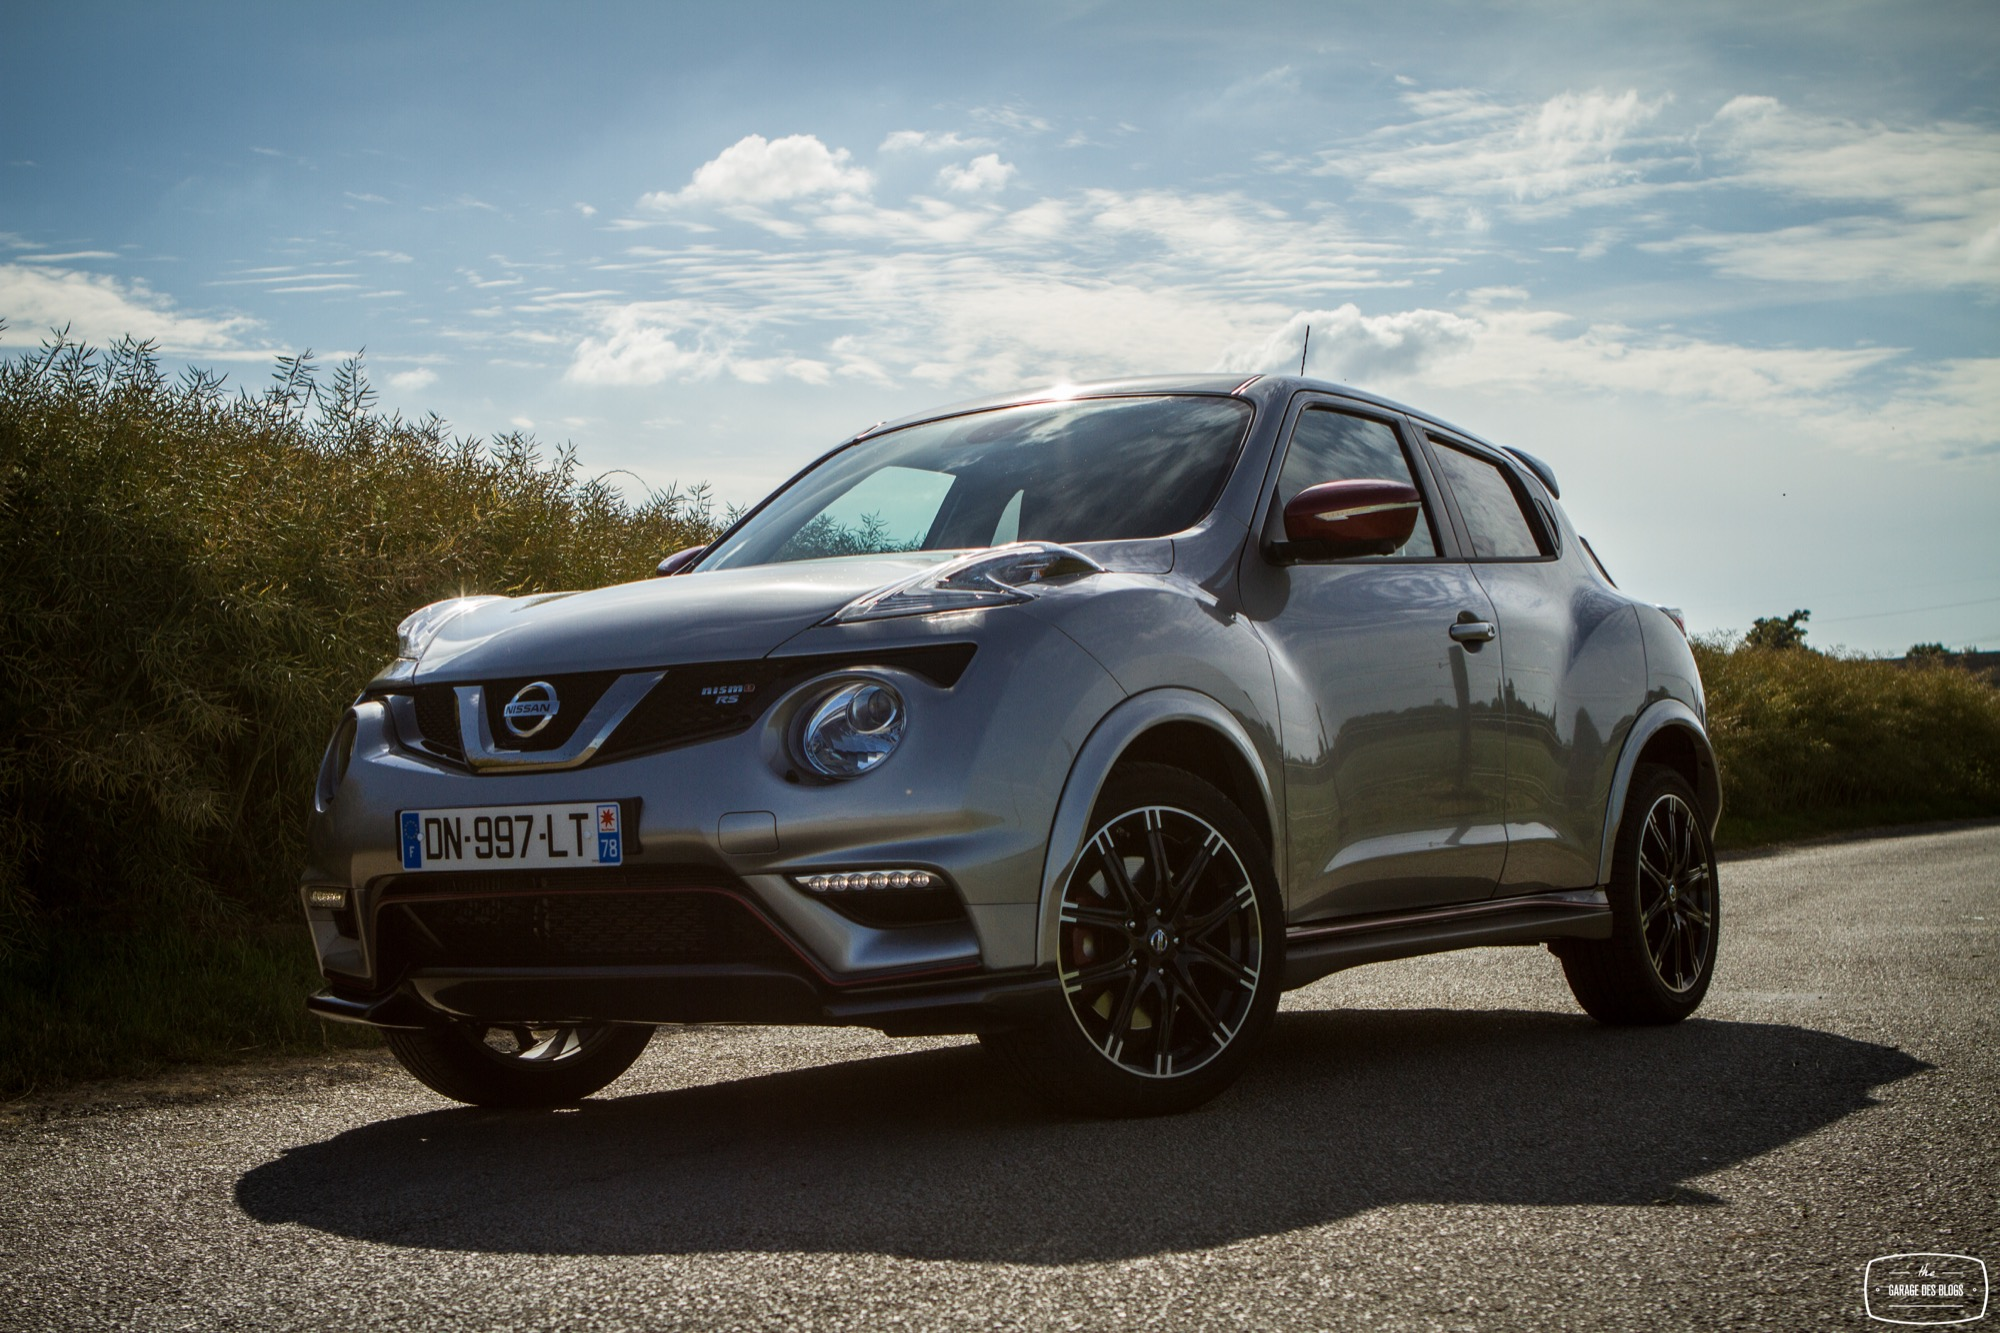 nissan juke une version monstrueuse en pr paration pictures to pin on pinterest. Black Bedroom Furniture Sets. Home Design Ideas